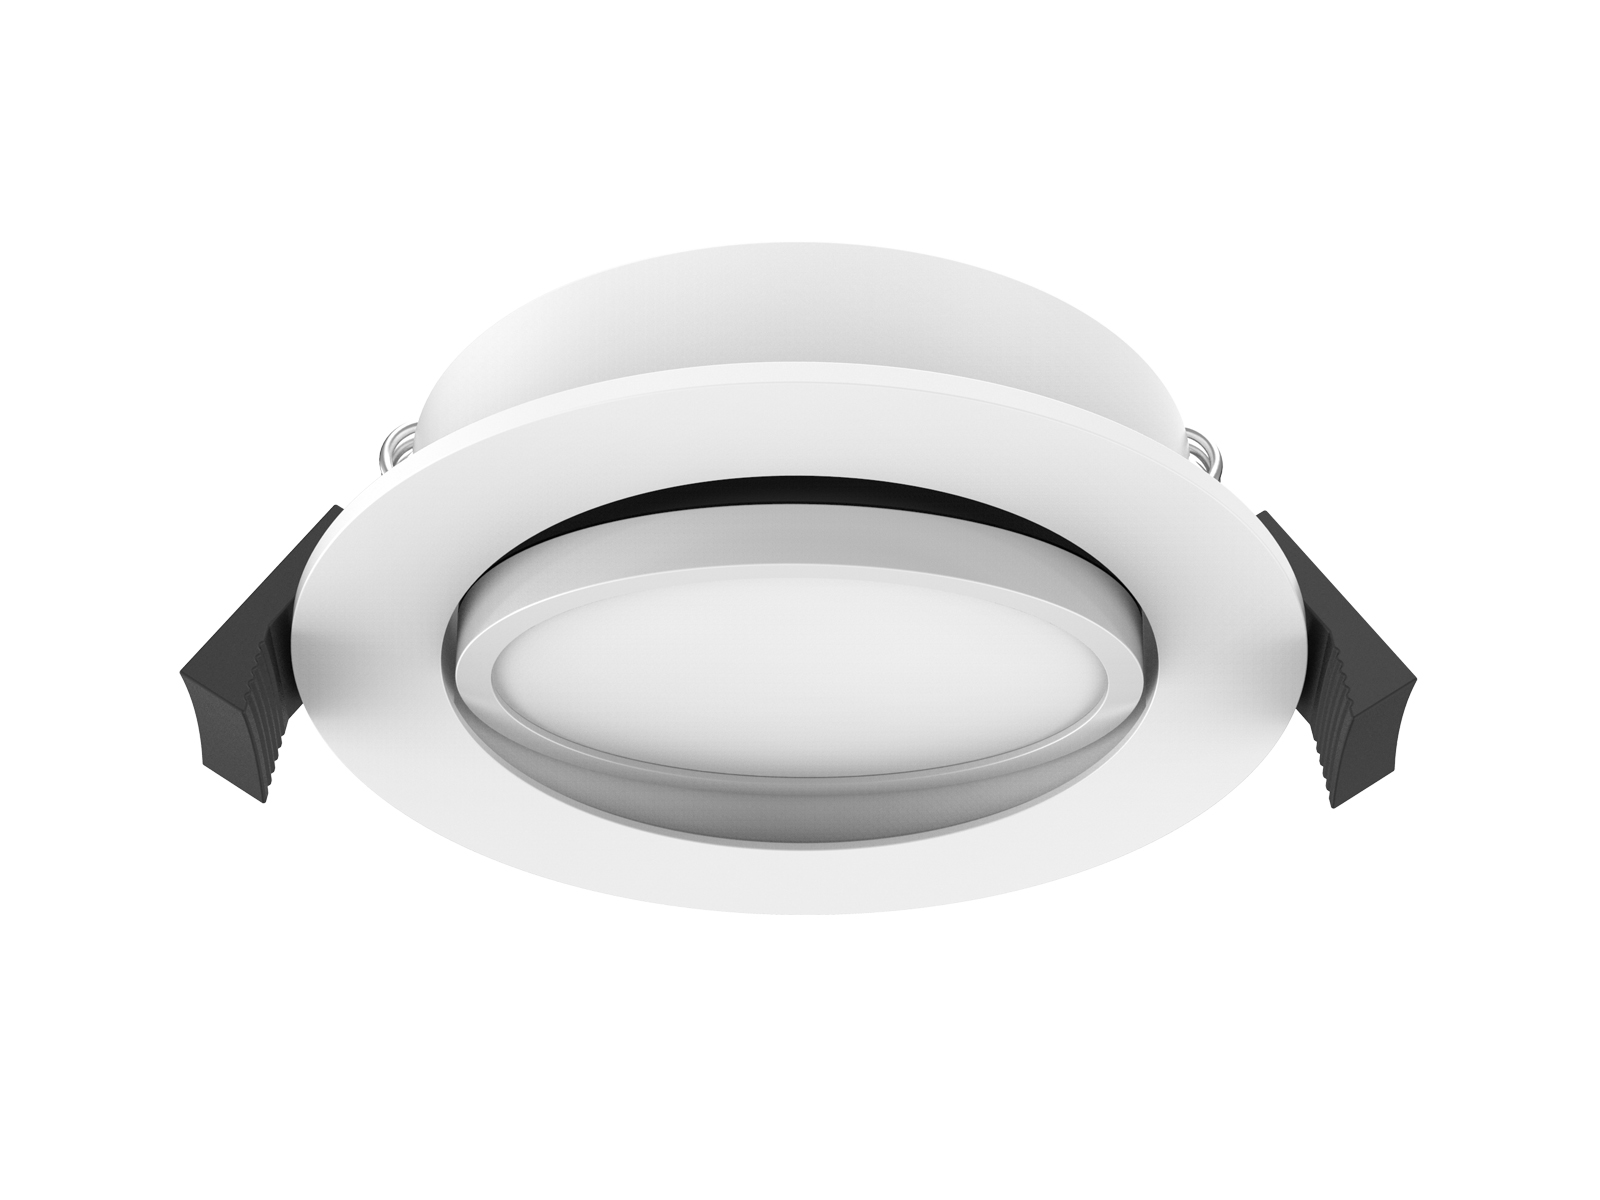 CL88 LED Downlight